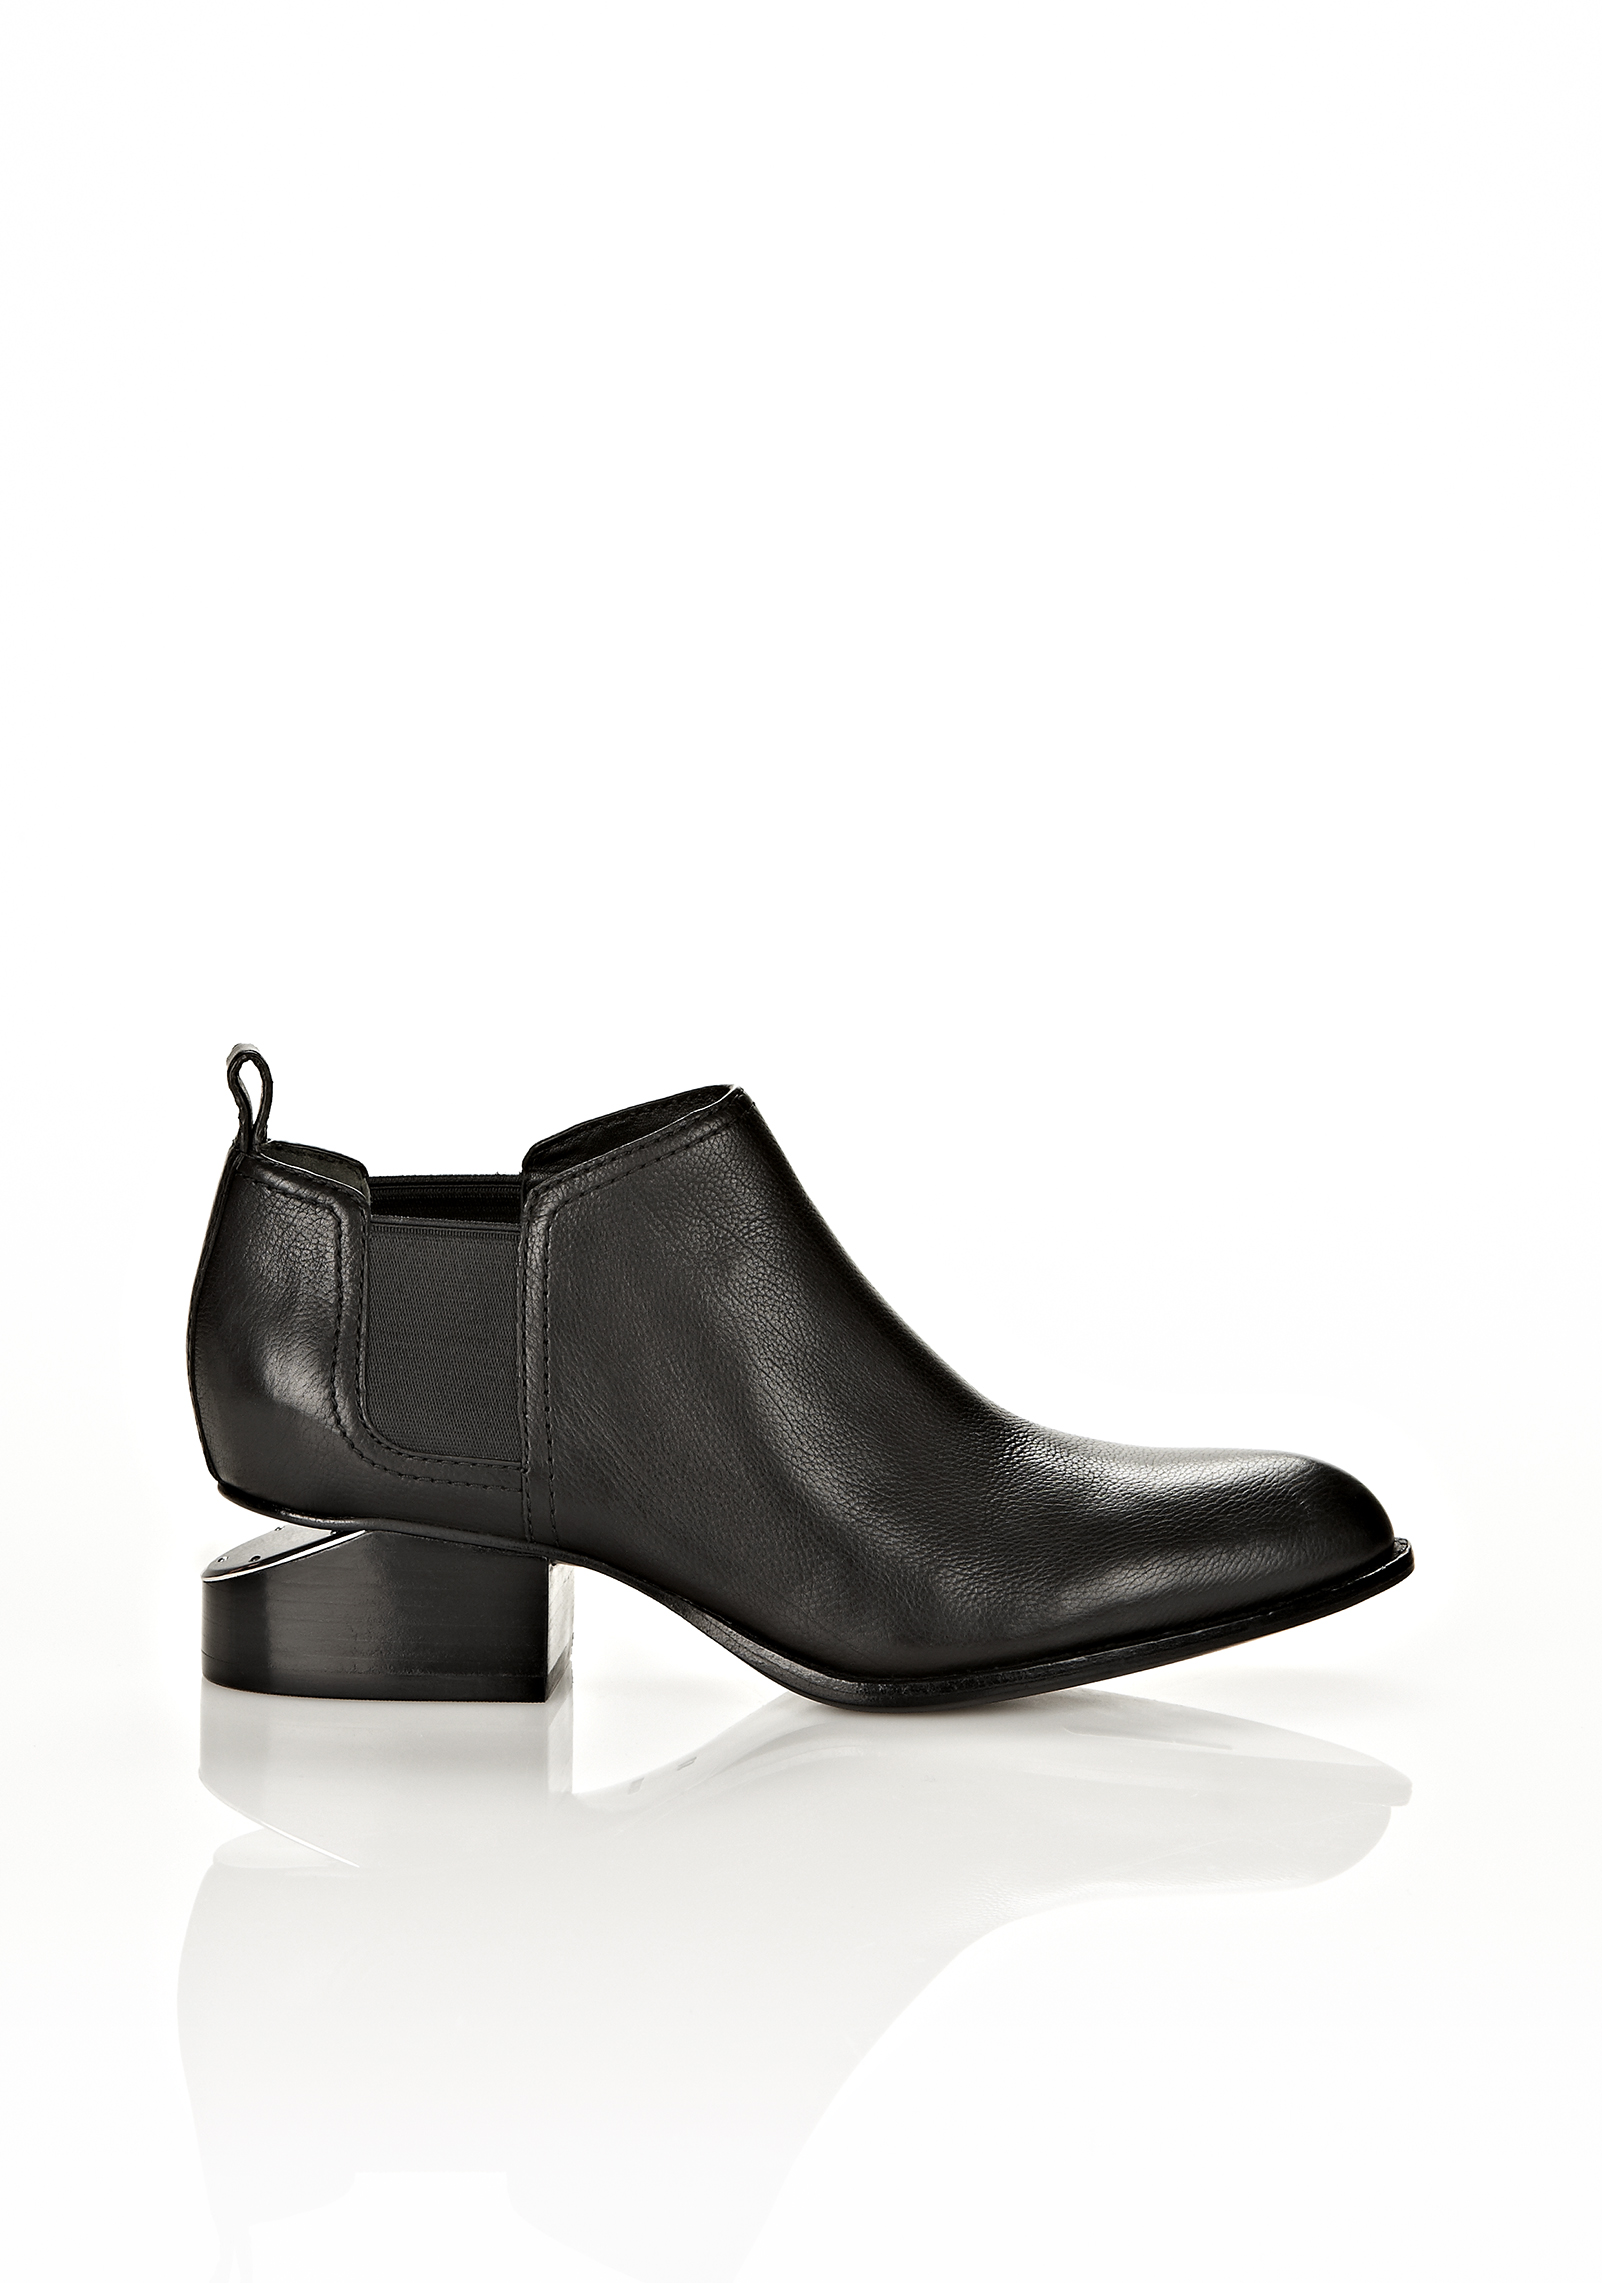 Alexander Wang Low Cut-out Heel Ankle Boots in Black